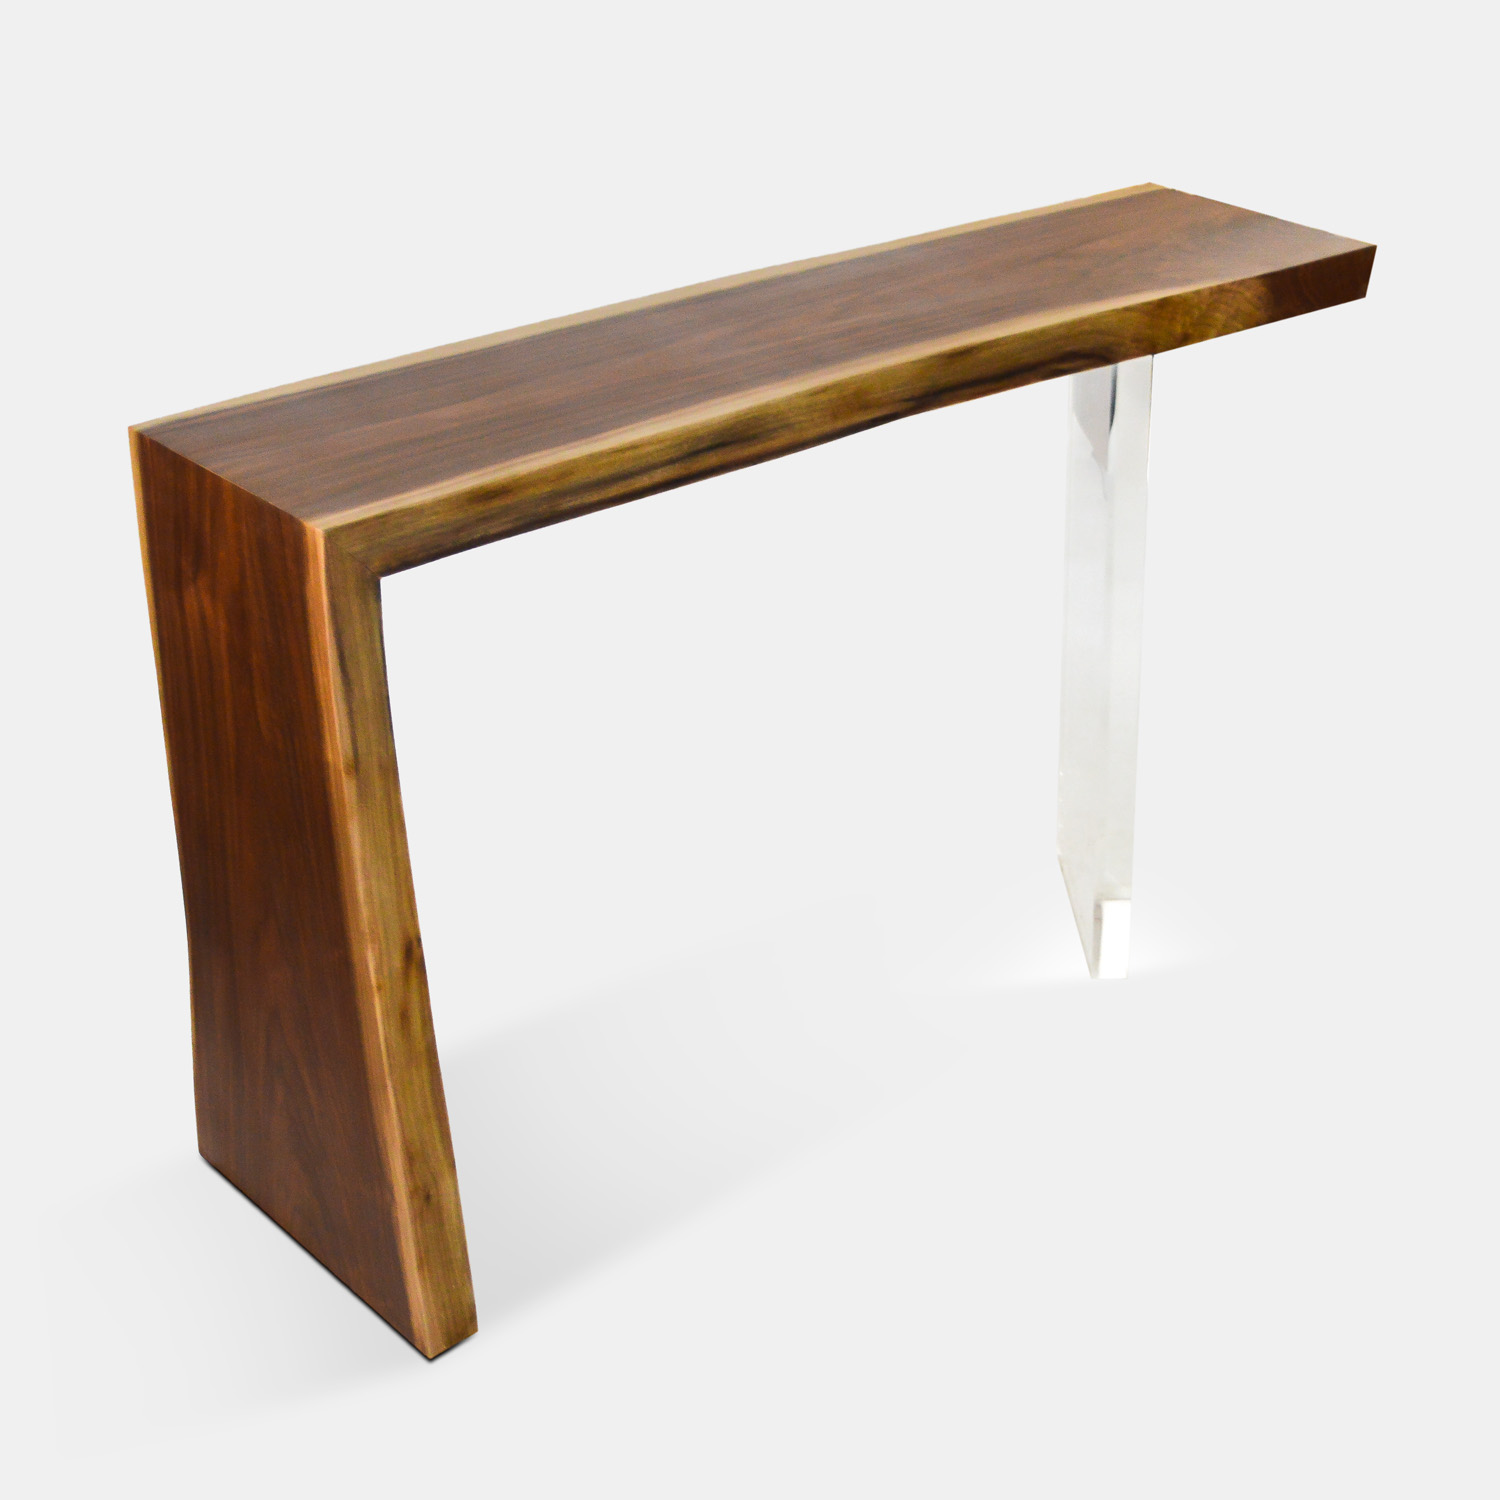 double-live-edge-walnut-floating-console-acrylic-leg-rotsen-furniture.jpg